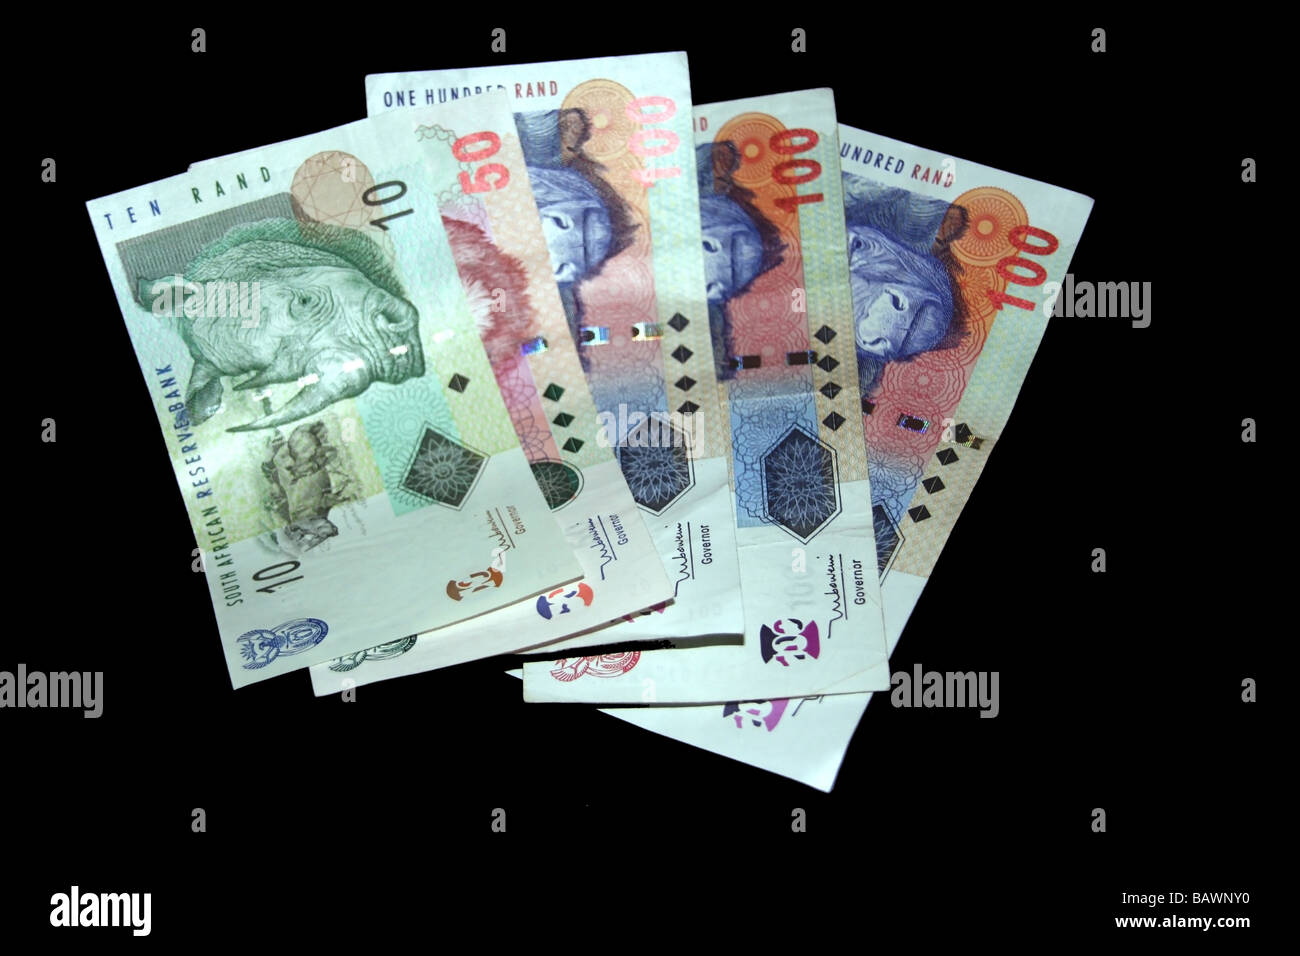 South African Money isolated on a black background - Stock Image